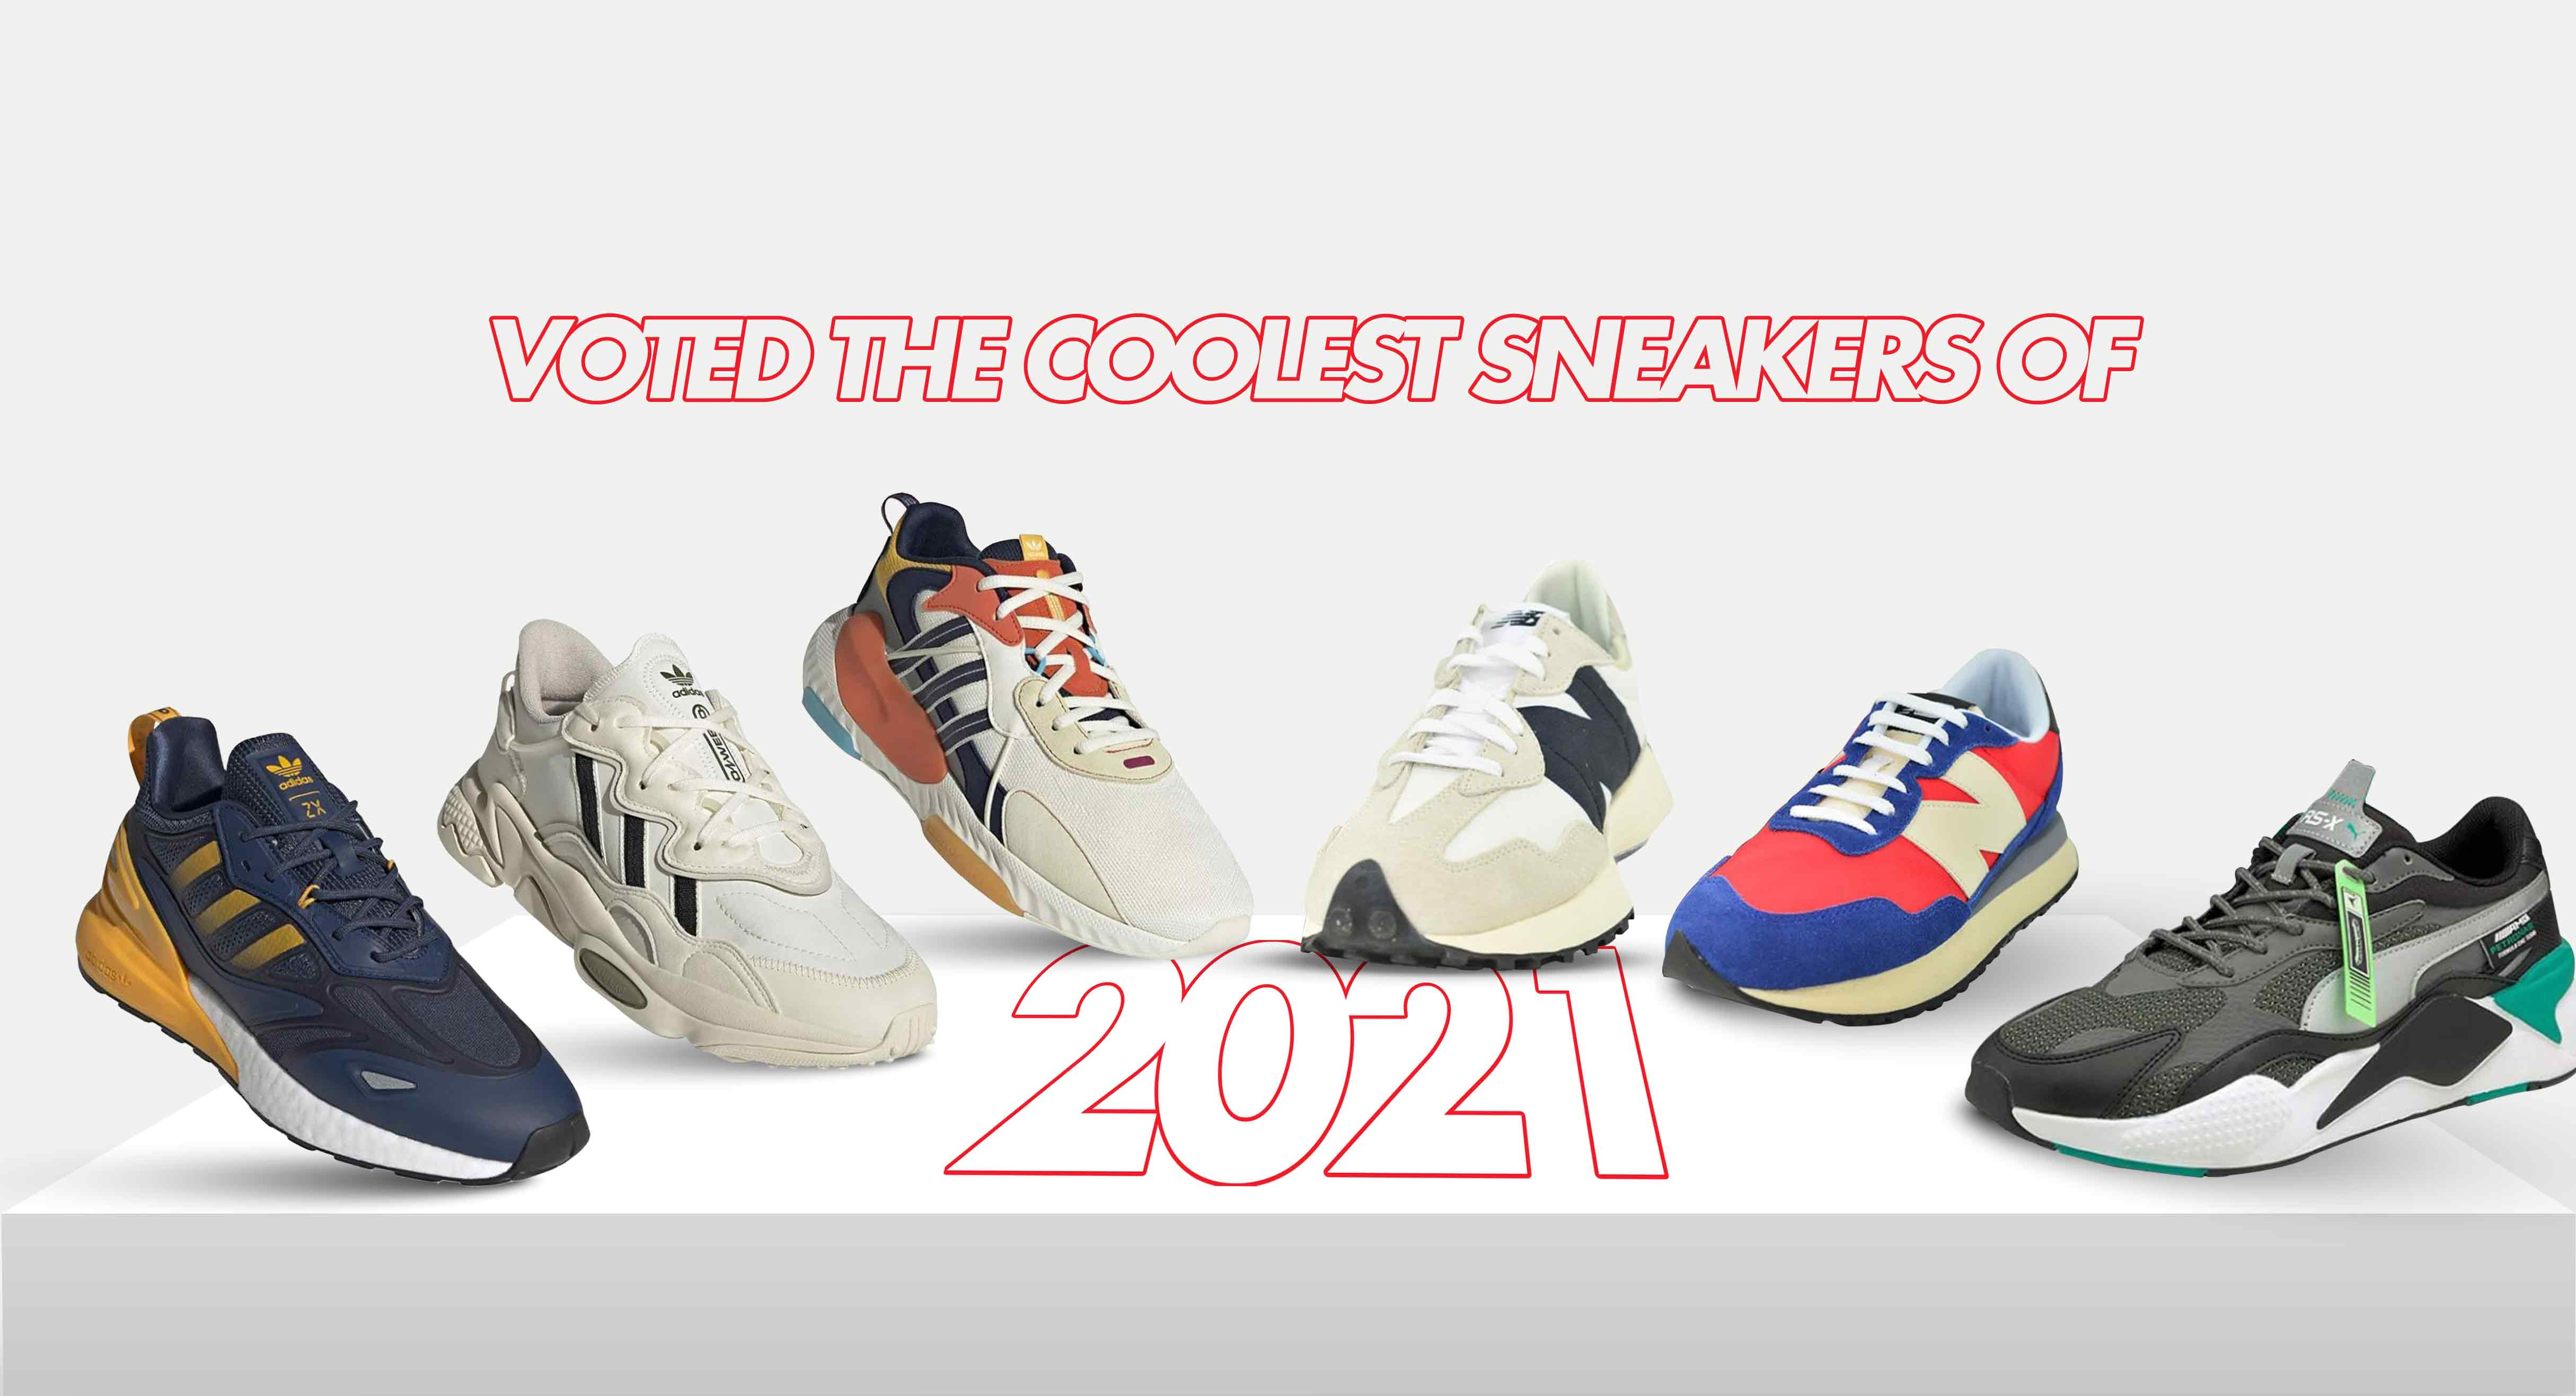 Voted the Coolest Sneakers of 2021